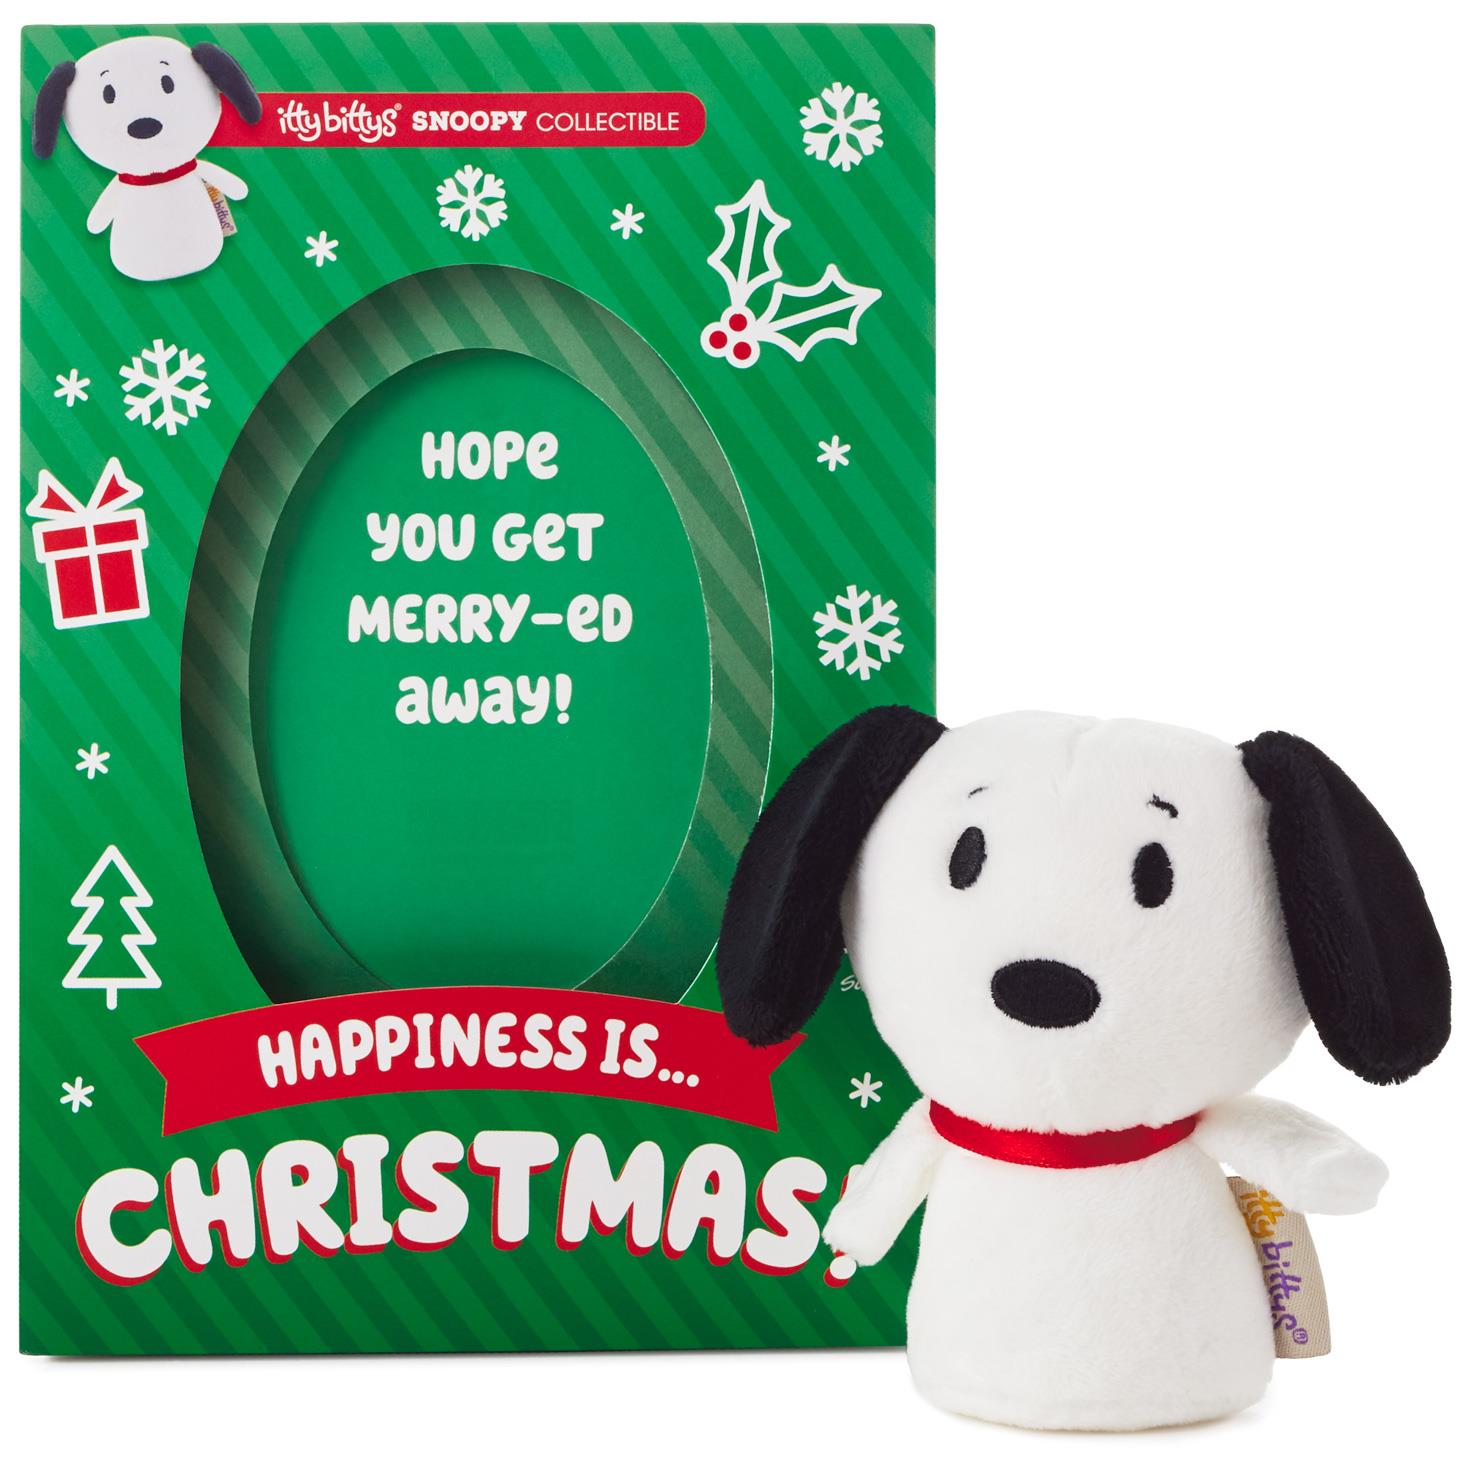 Itty Bittys 174 Peanuts 174 Snoopy Christmas Card With Stuffed